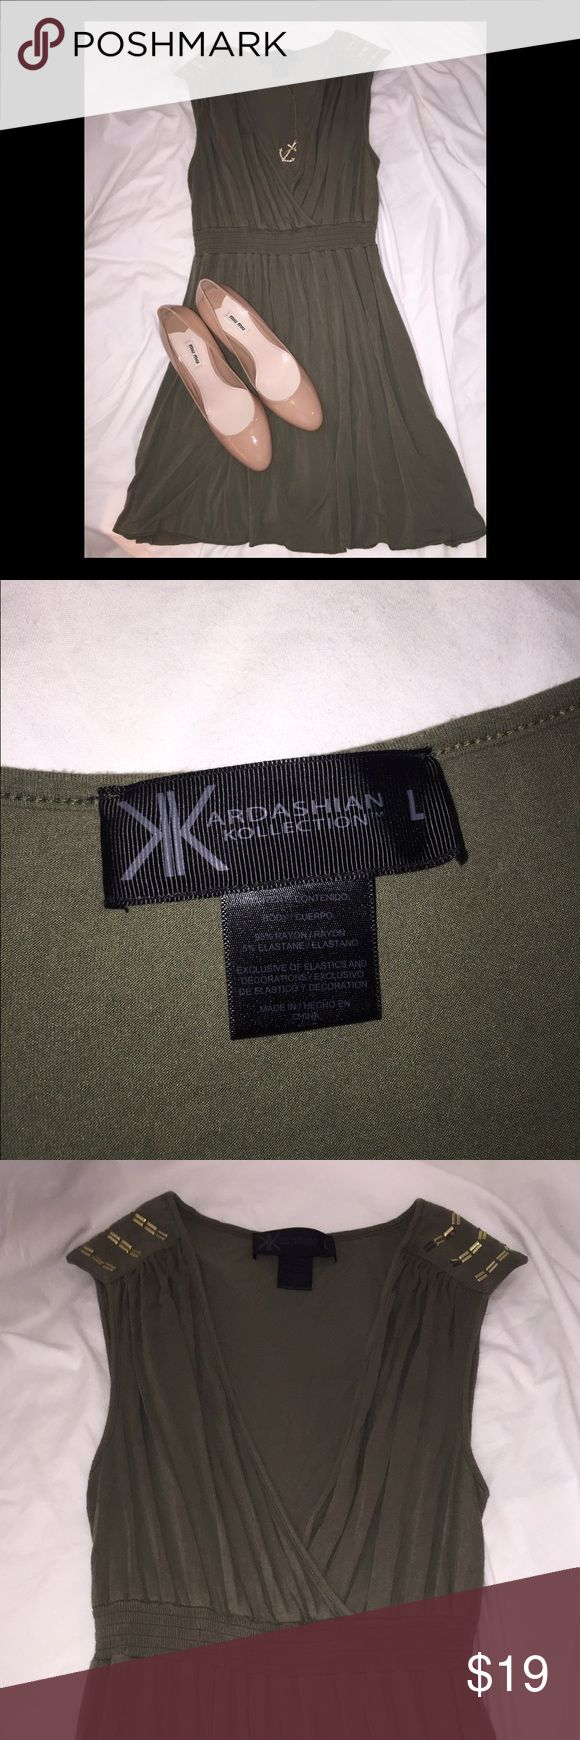 Kardashian Kollection Army Green Dress Size L Military gold shoulder detail, deep V neck. Great army green color, dress goes great with nude. Make an offer. Kardashian Kollection Dresses